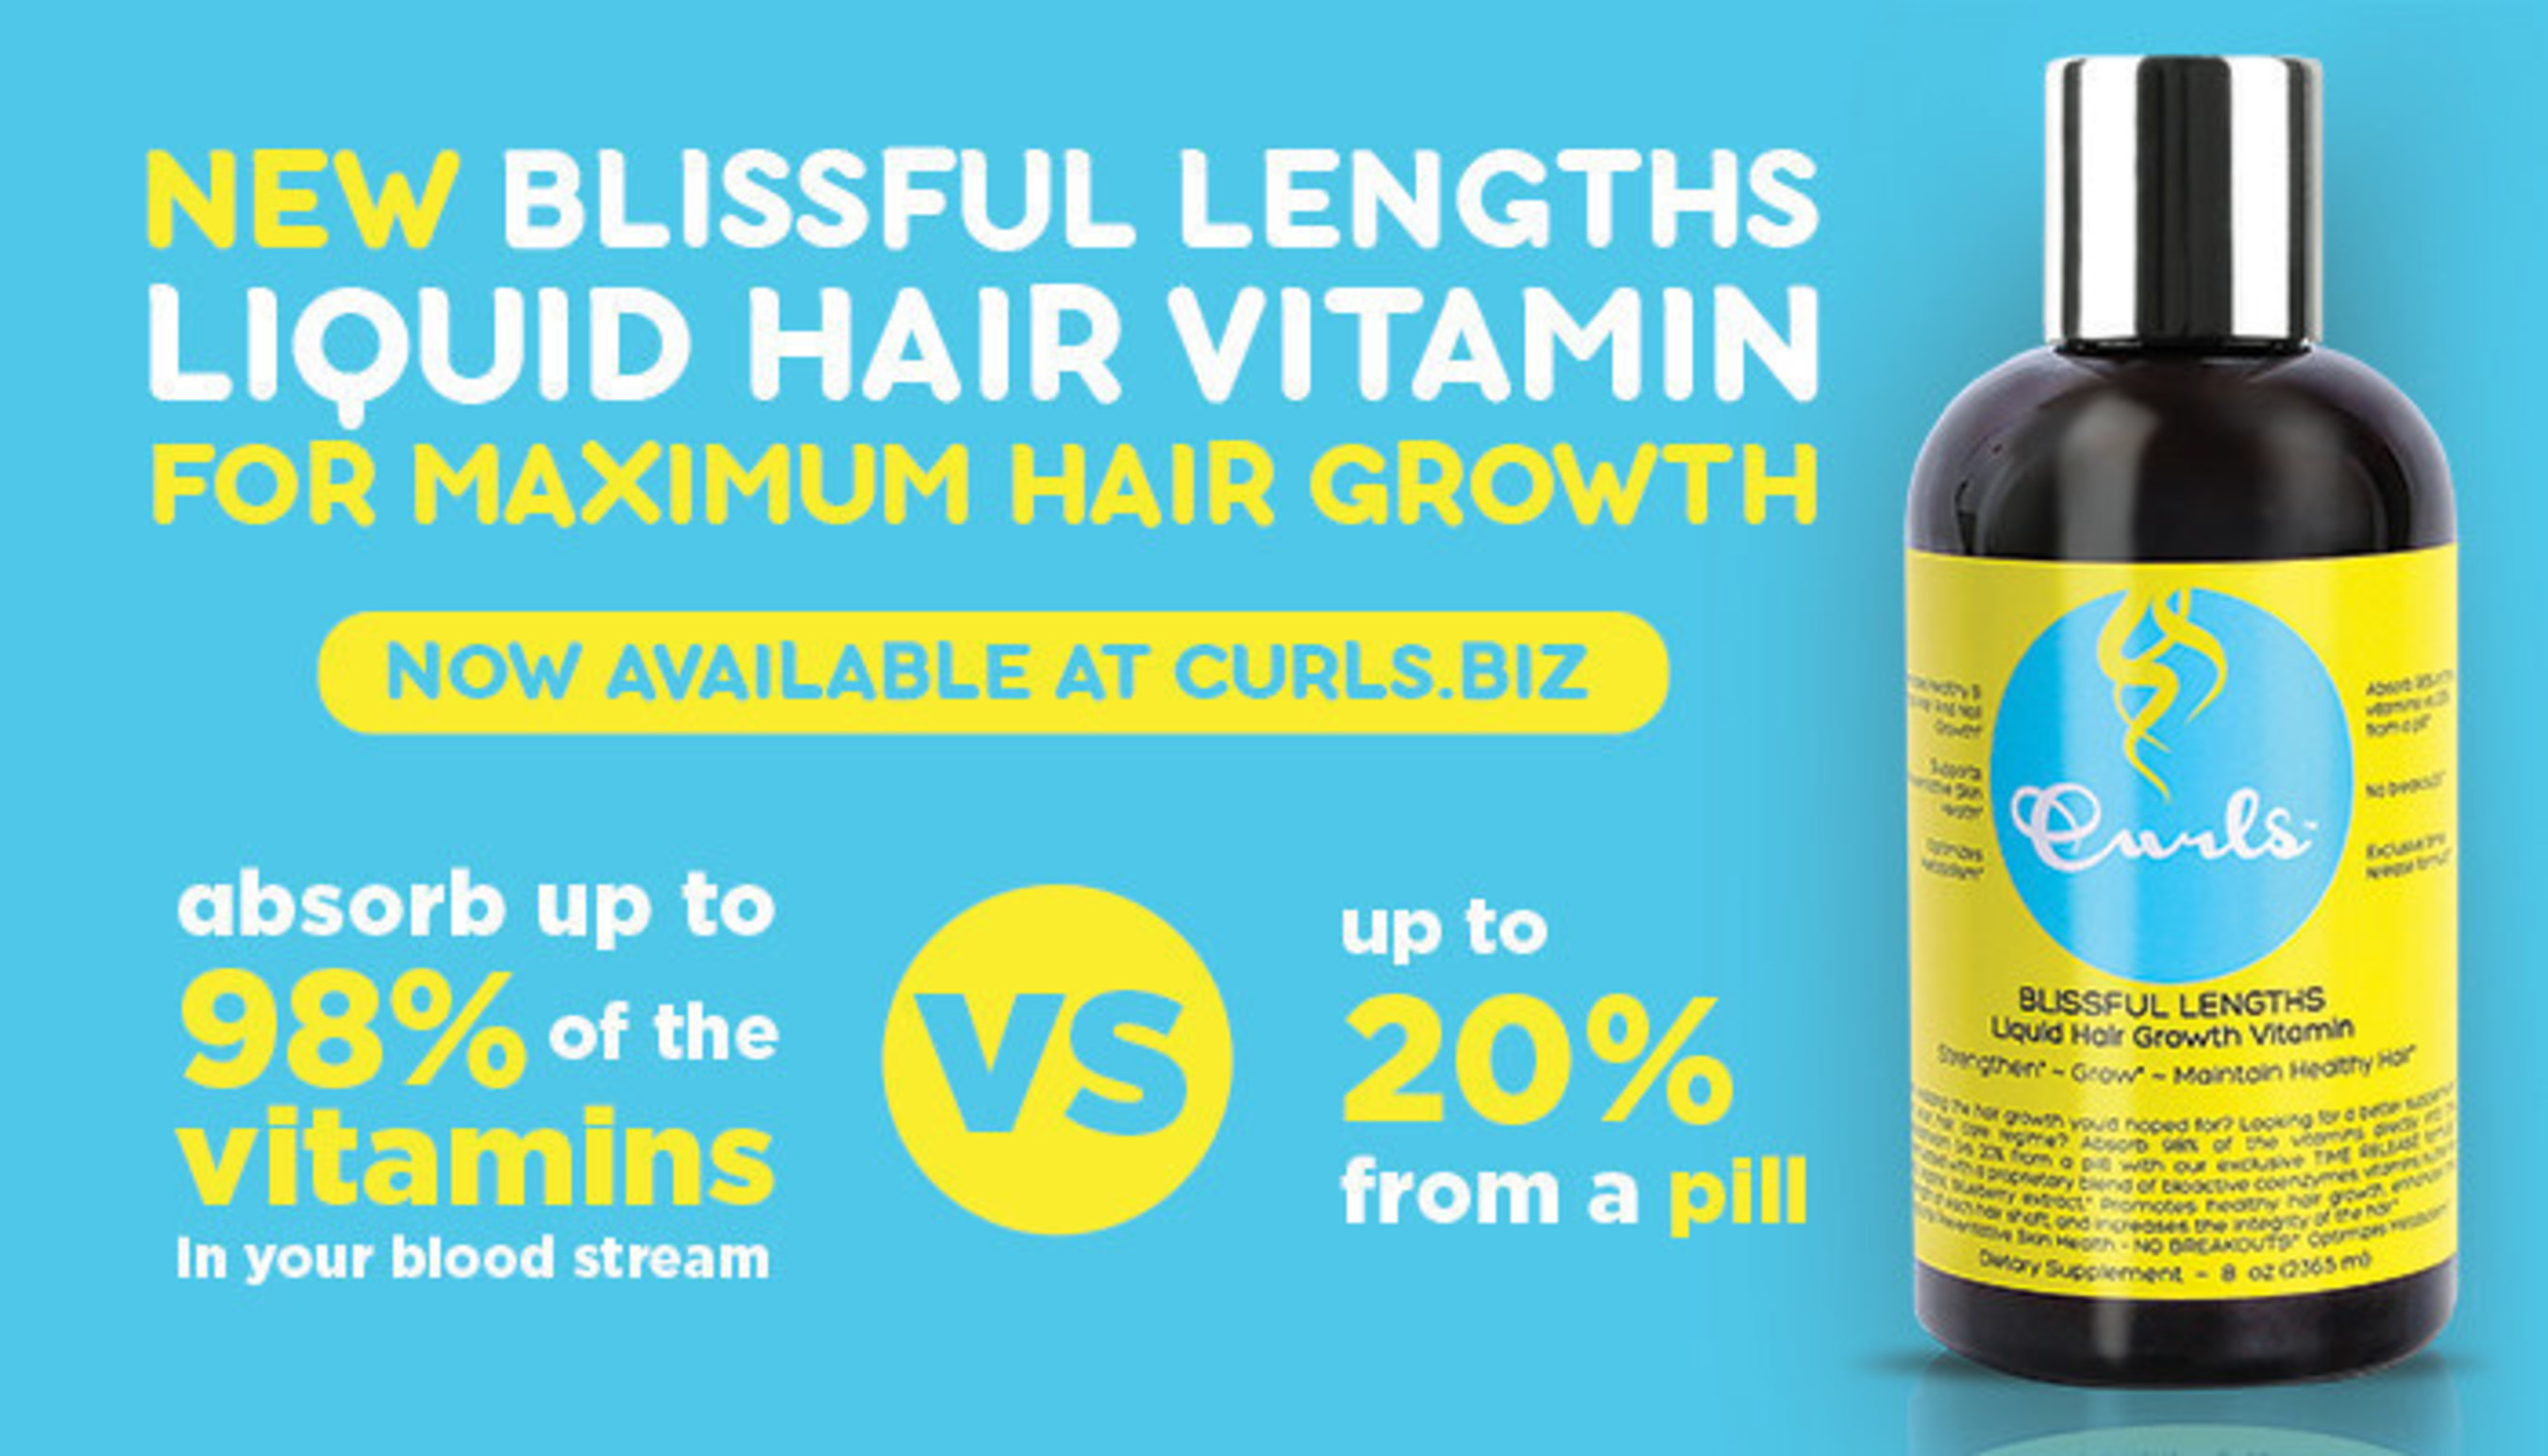 CURLS Launches A Revolutionary All-Natural Liquid Hair Growth Multi